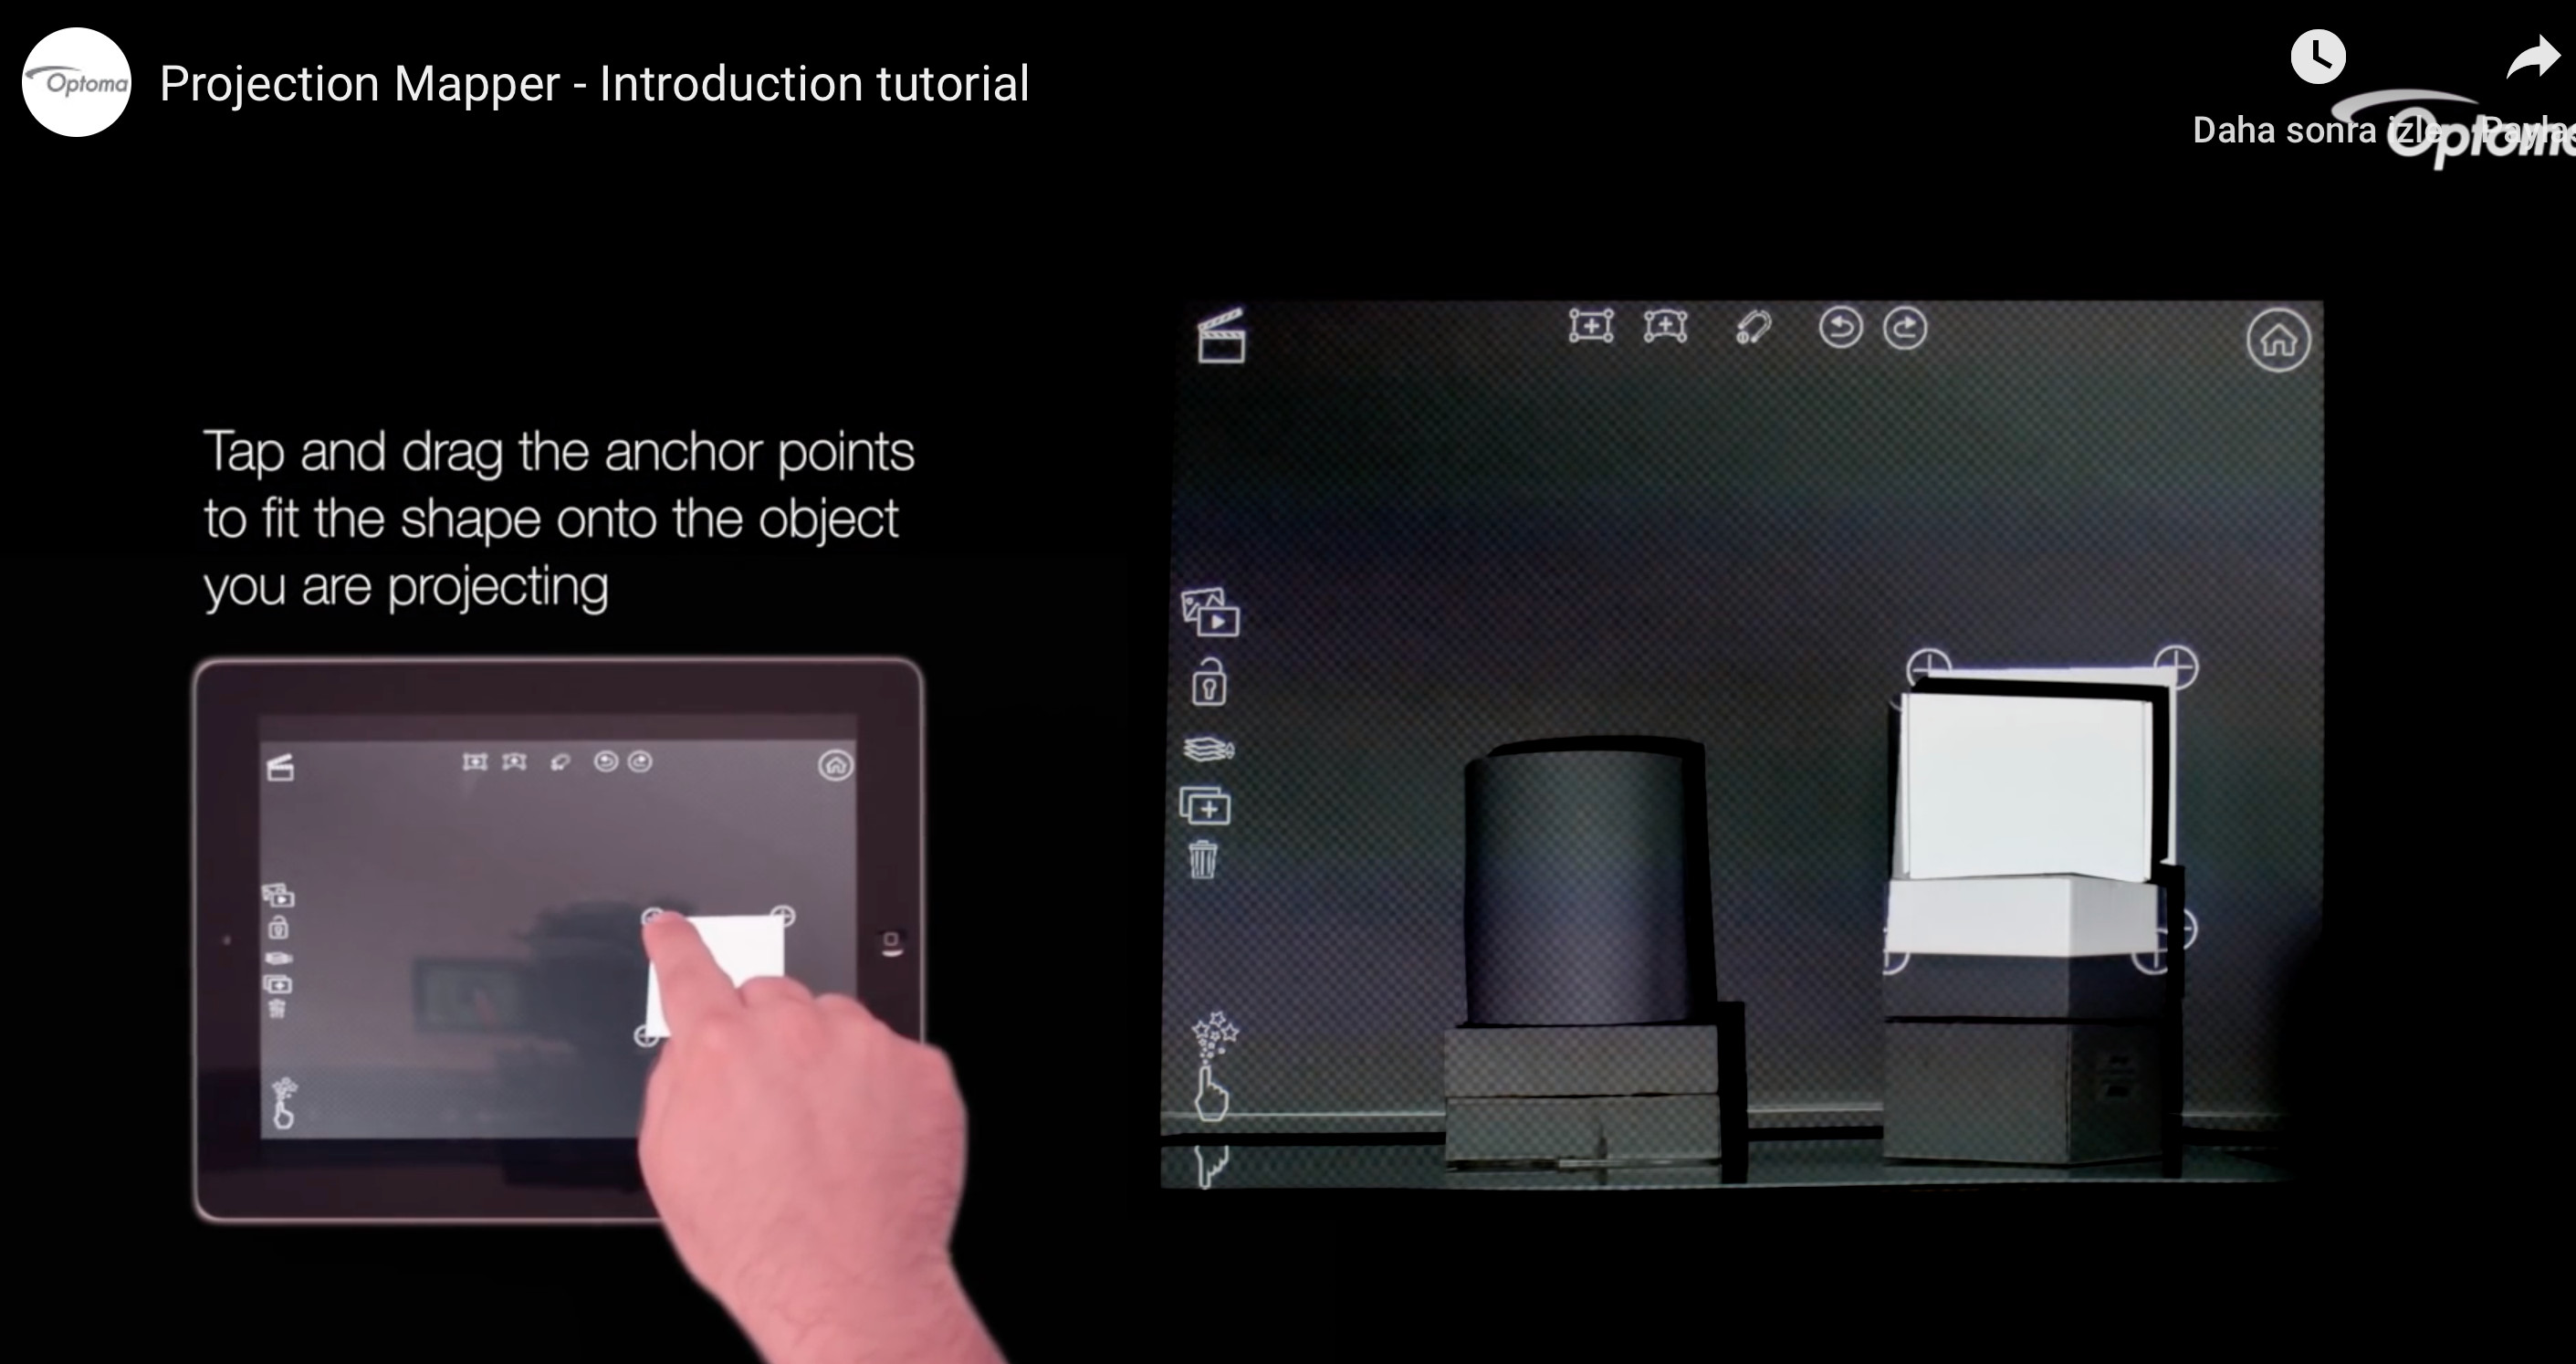 screenshot from a tutorial, prepared by Optoma Projector Brand